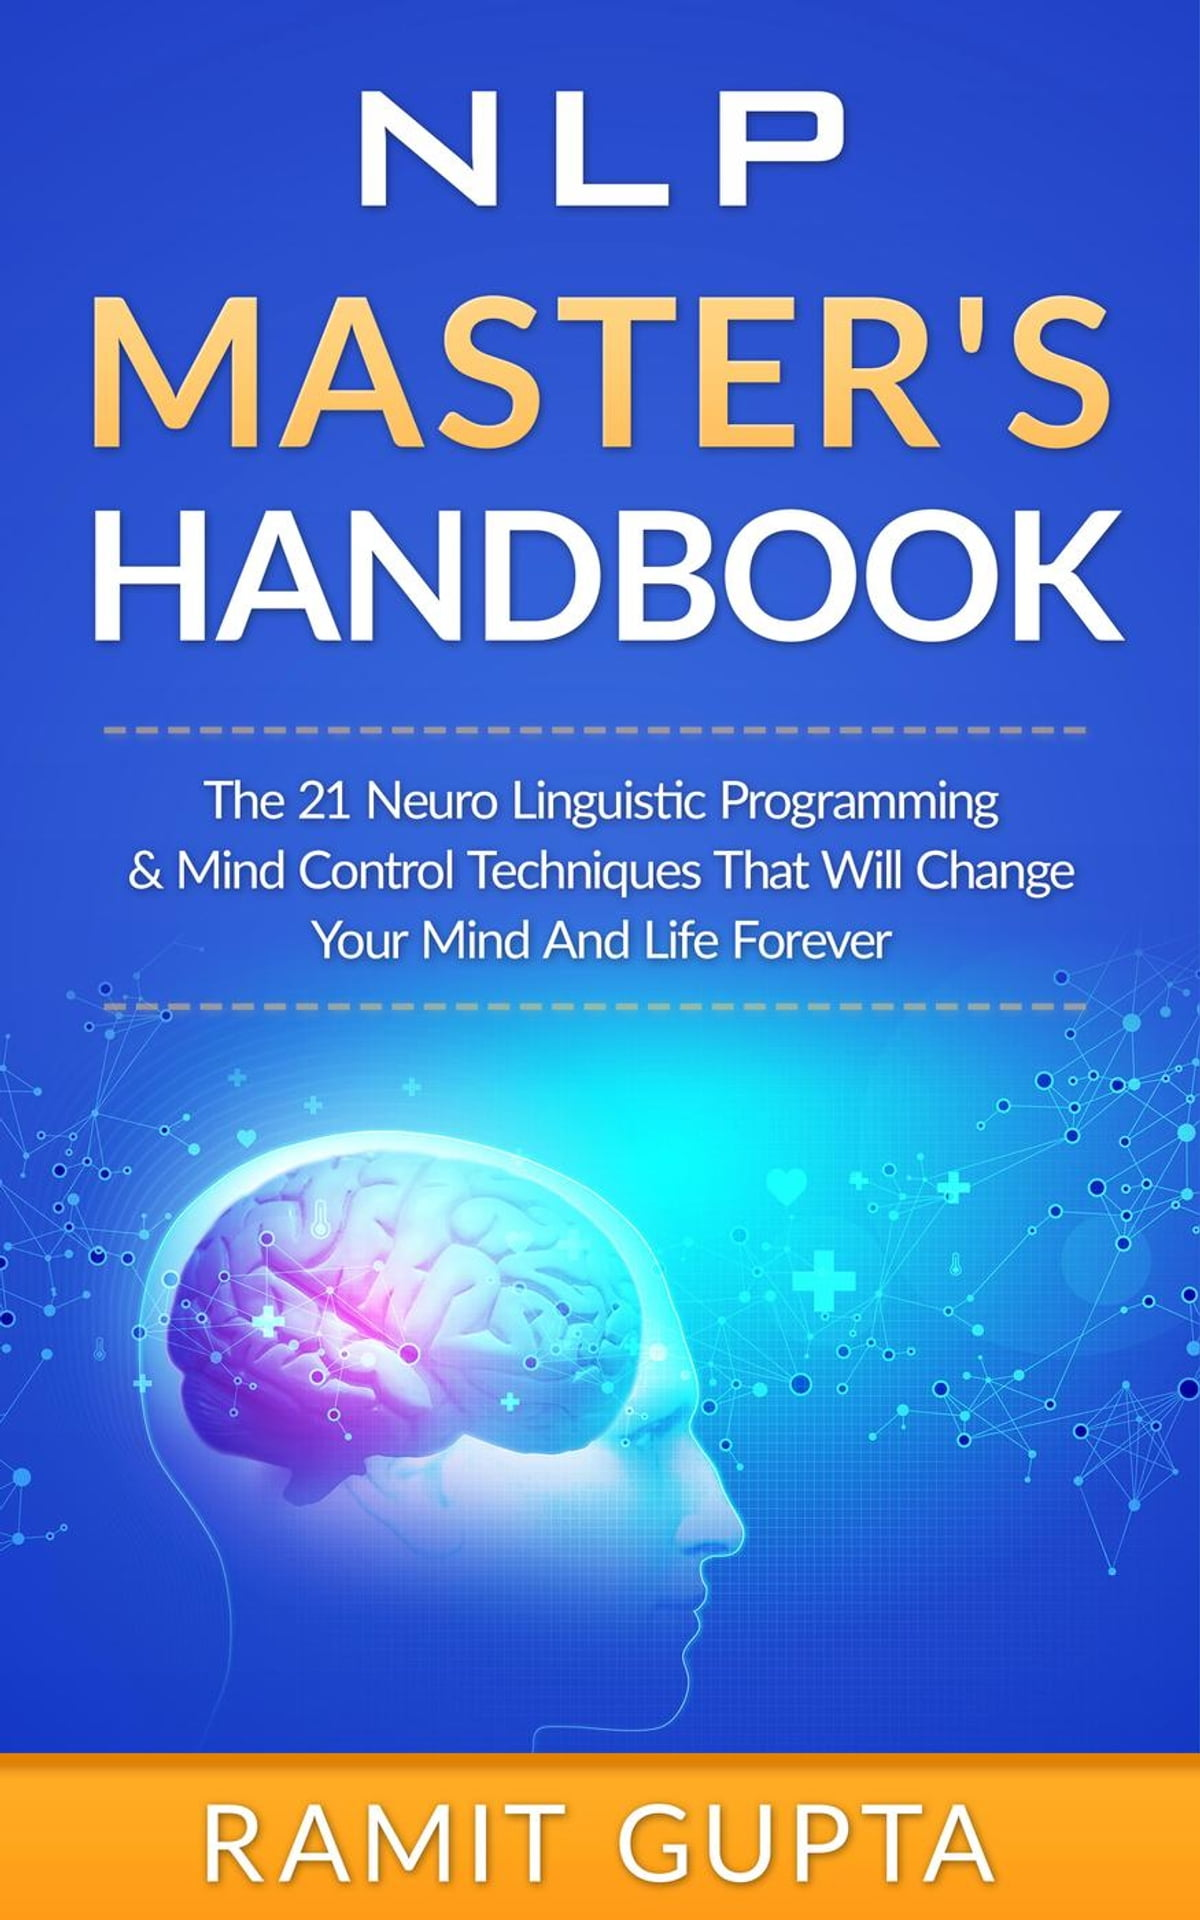 Mind control techniques - Nlp Master S Handbook The 21 Neuro Linguistic Programming And Mind Control Techniques That Will Change Your Mind And Life Forever Ebook By Ramit Gupta